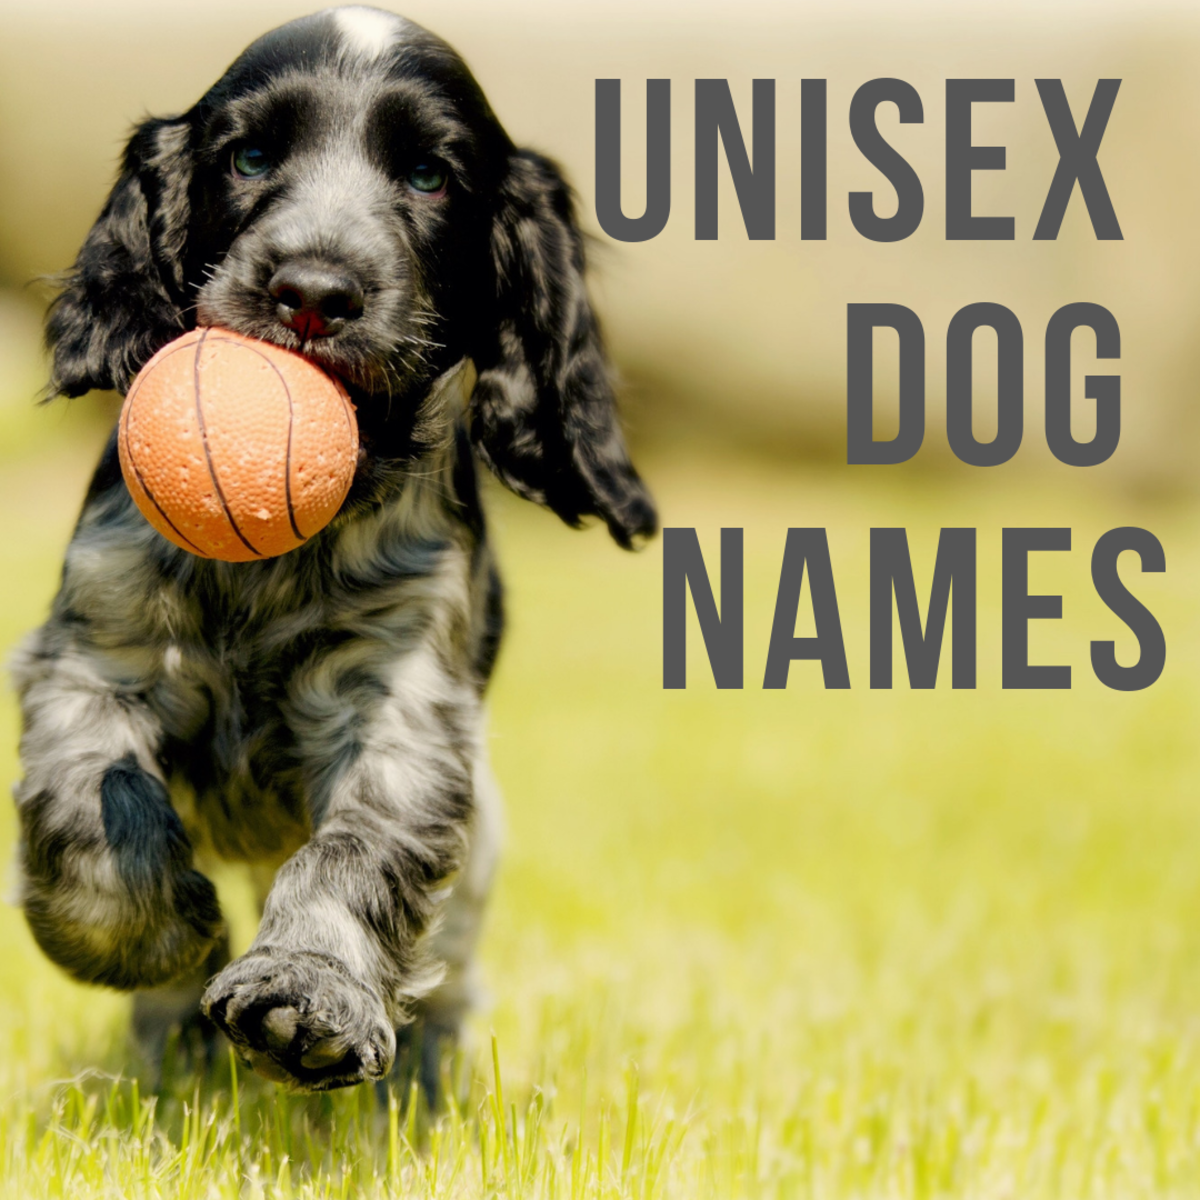 100+ Unisex Dogs Names That Work for Both Male and Female Pets